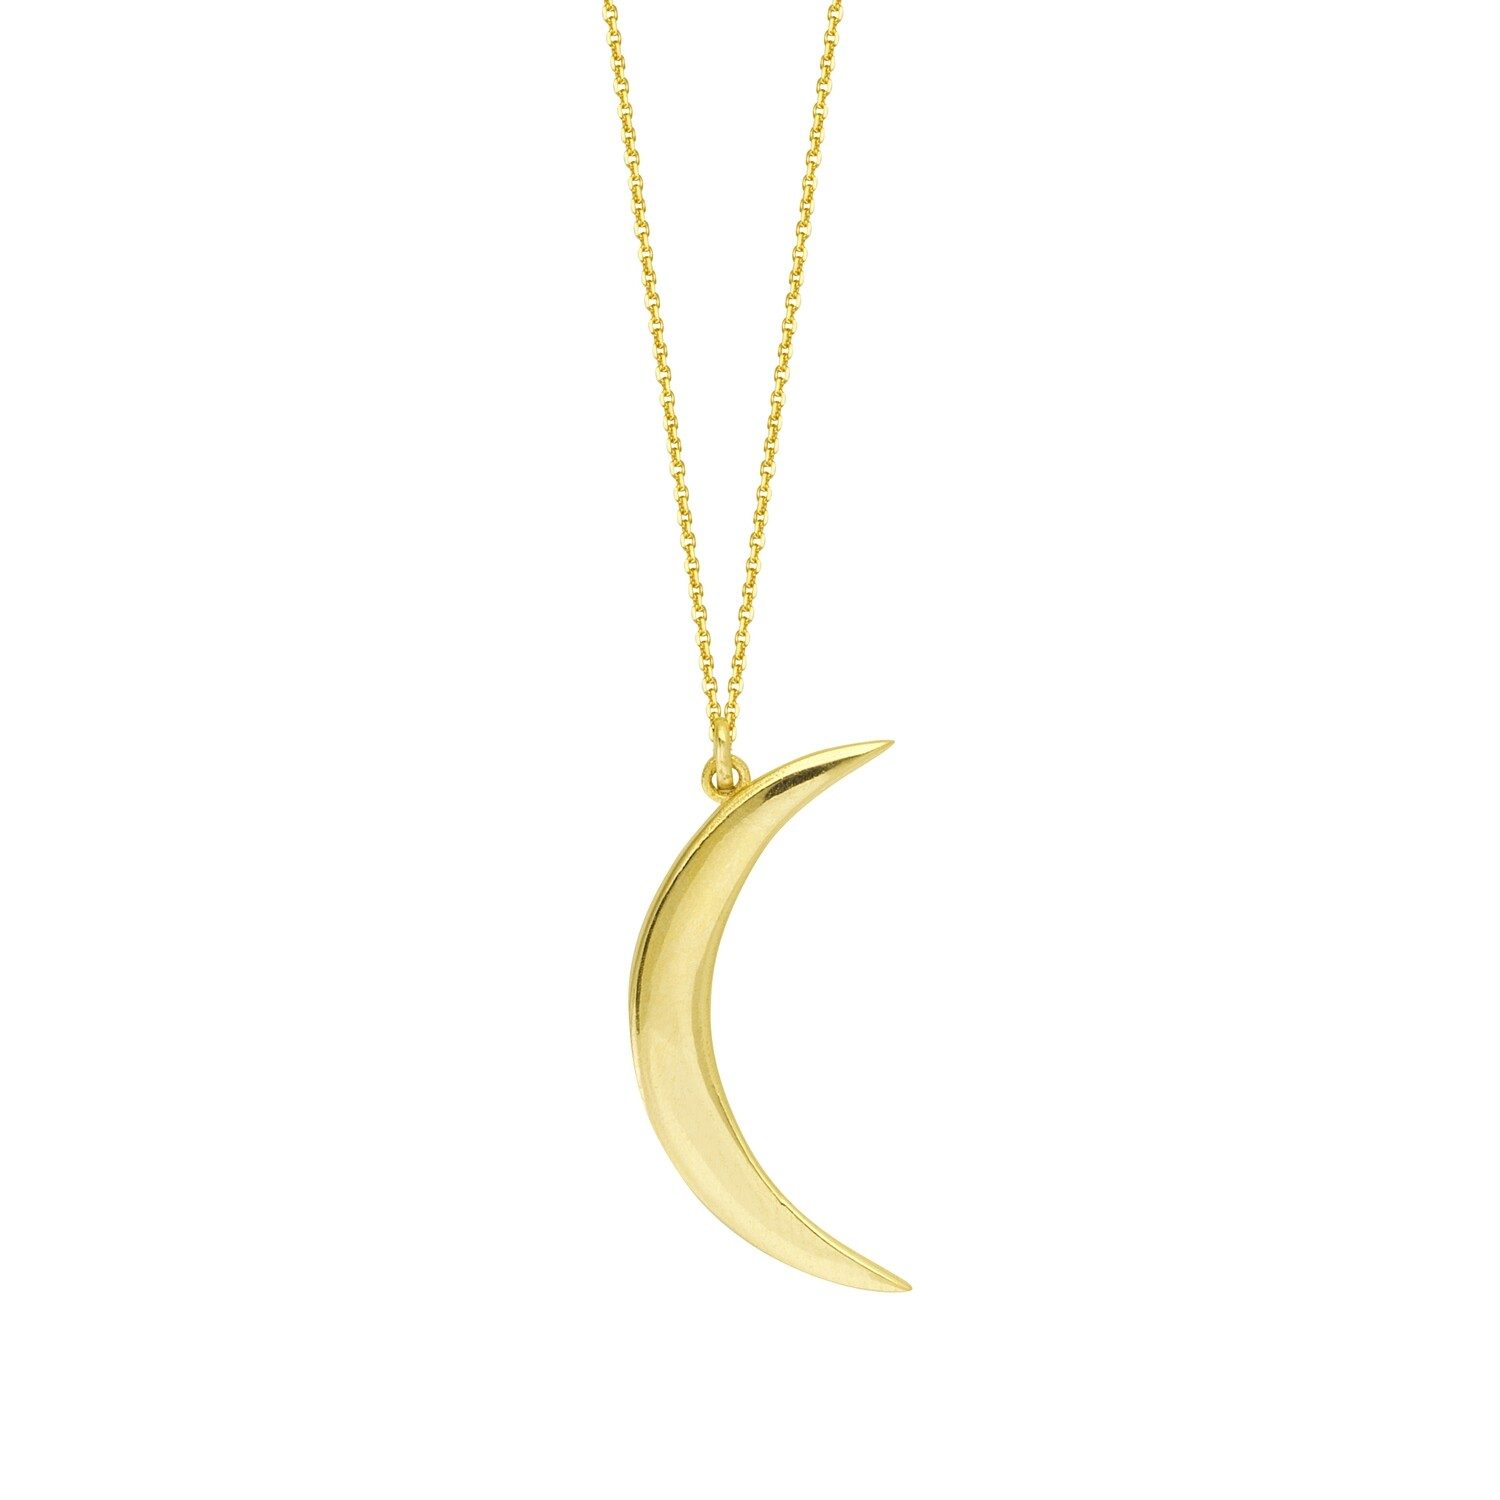 HALF MOON PENDANT WITH NECKLACE